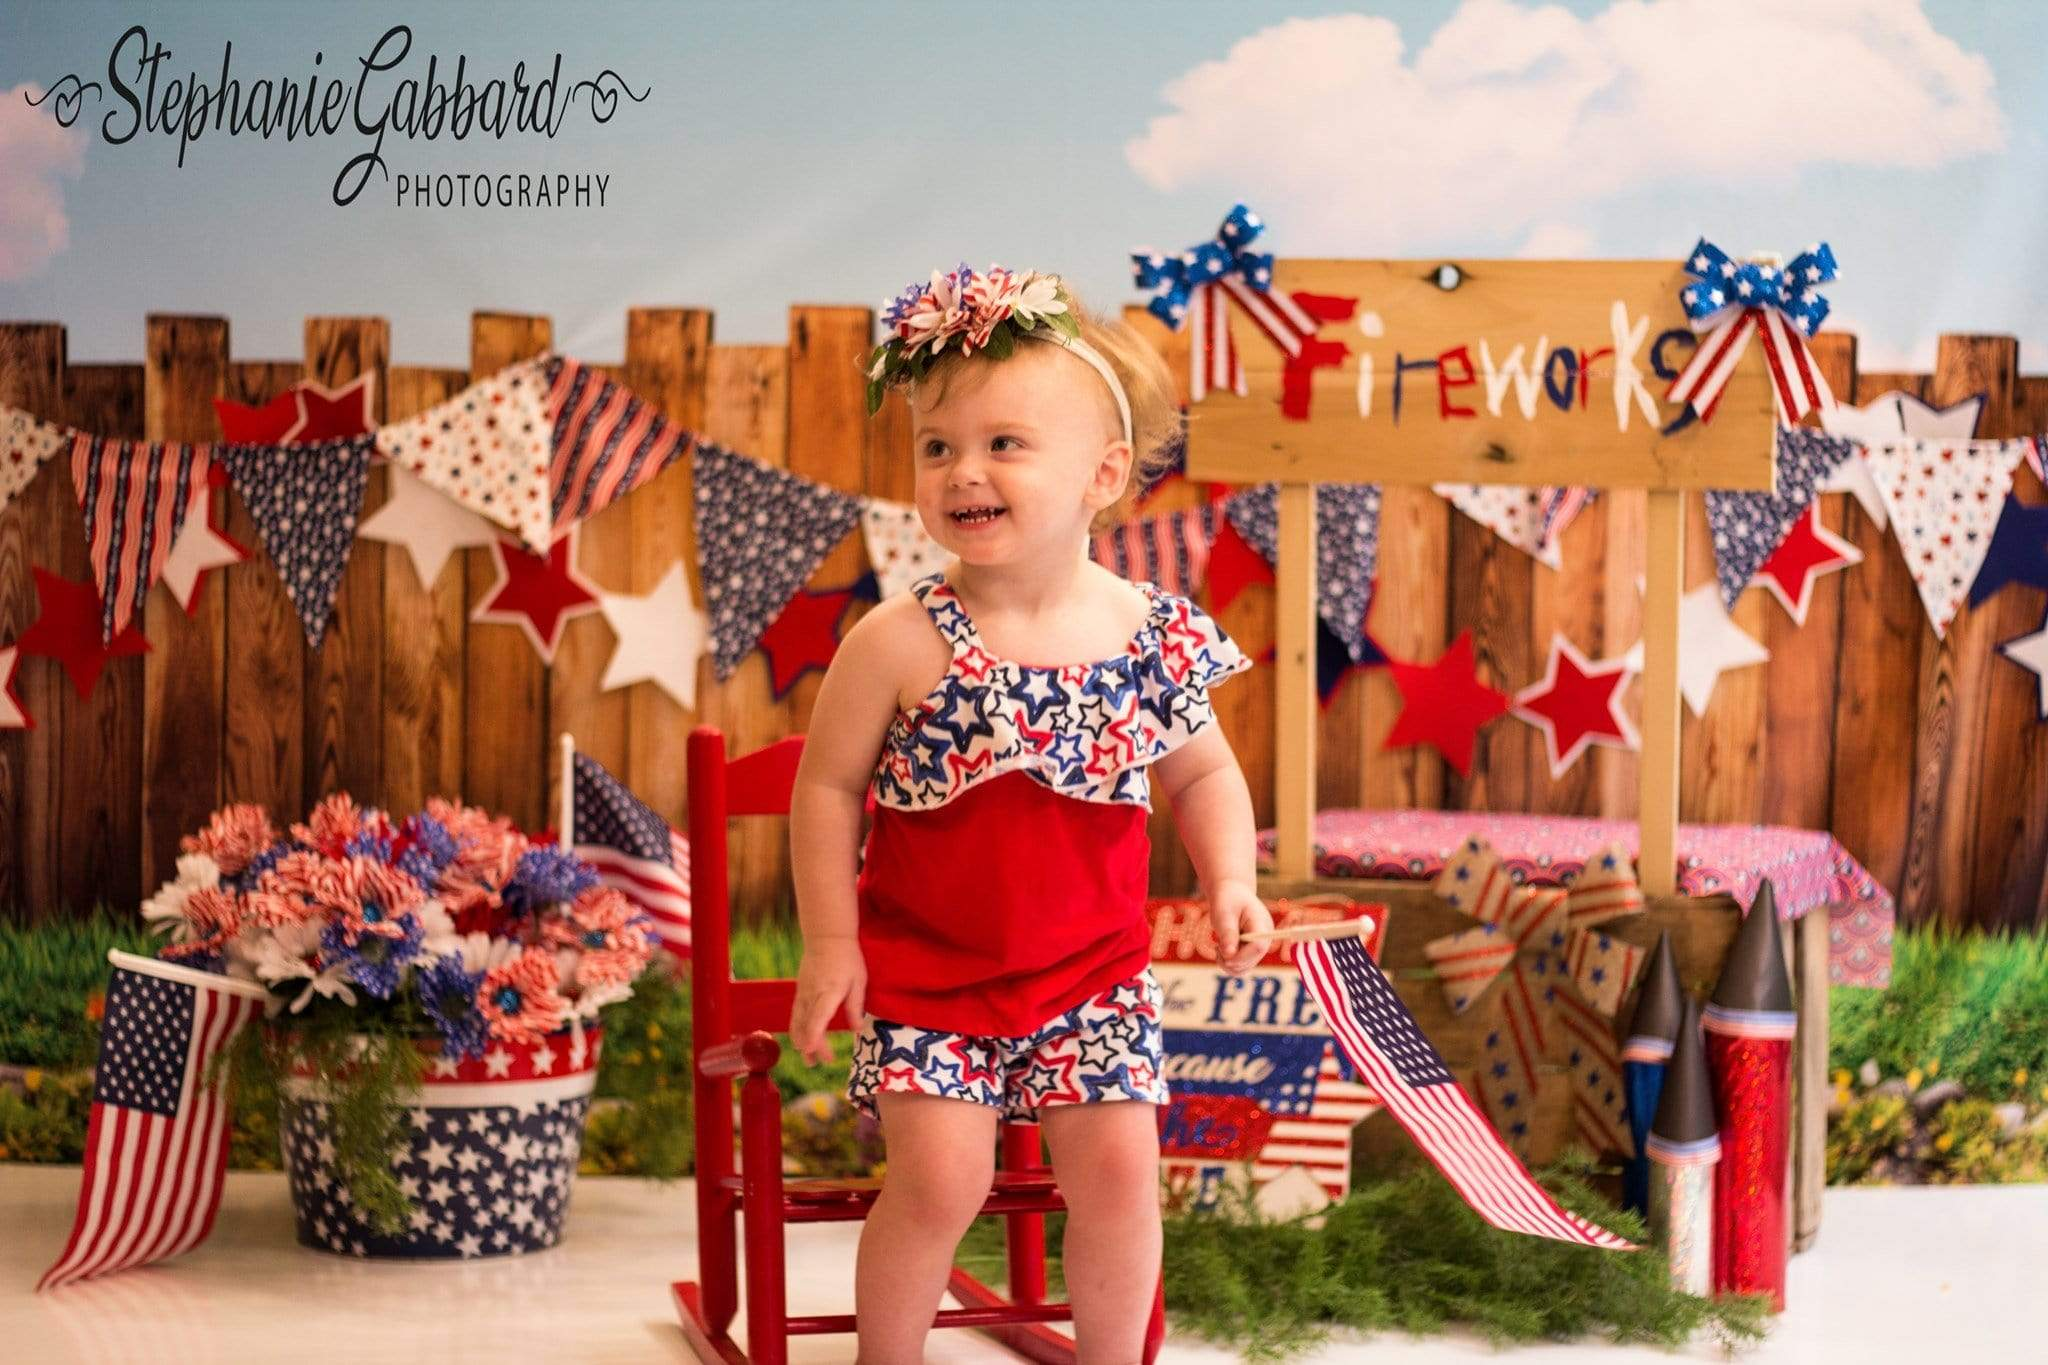 Load image into Gallery viewer, Katebackdrop:Kate American Fireworks Stand 4th of July Children Backdrop for Photography Designed by Stephanie Gabbard